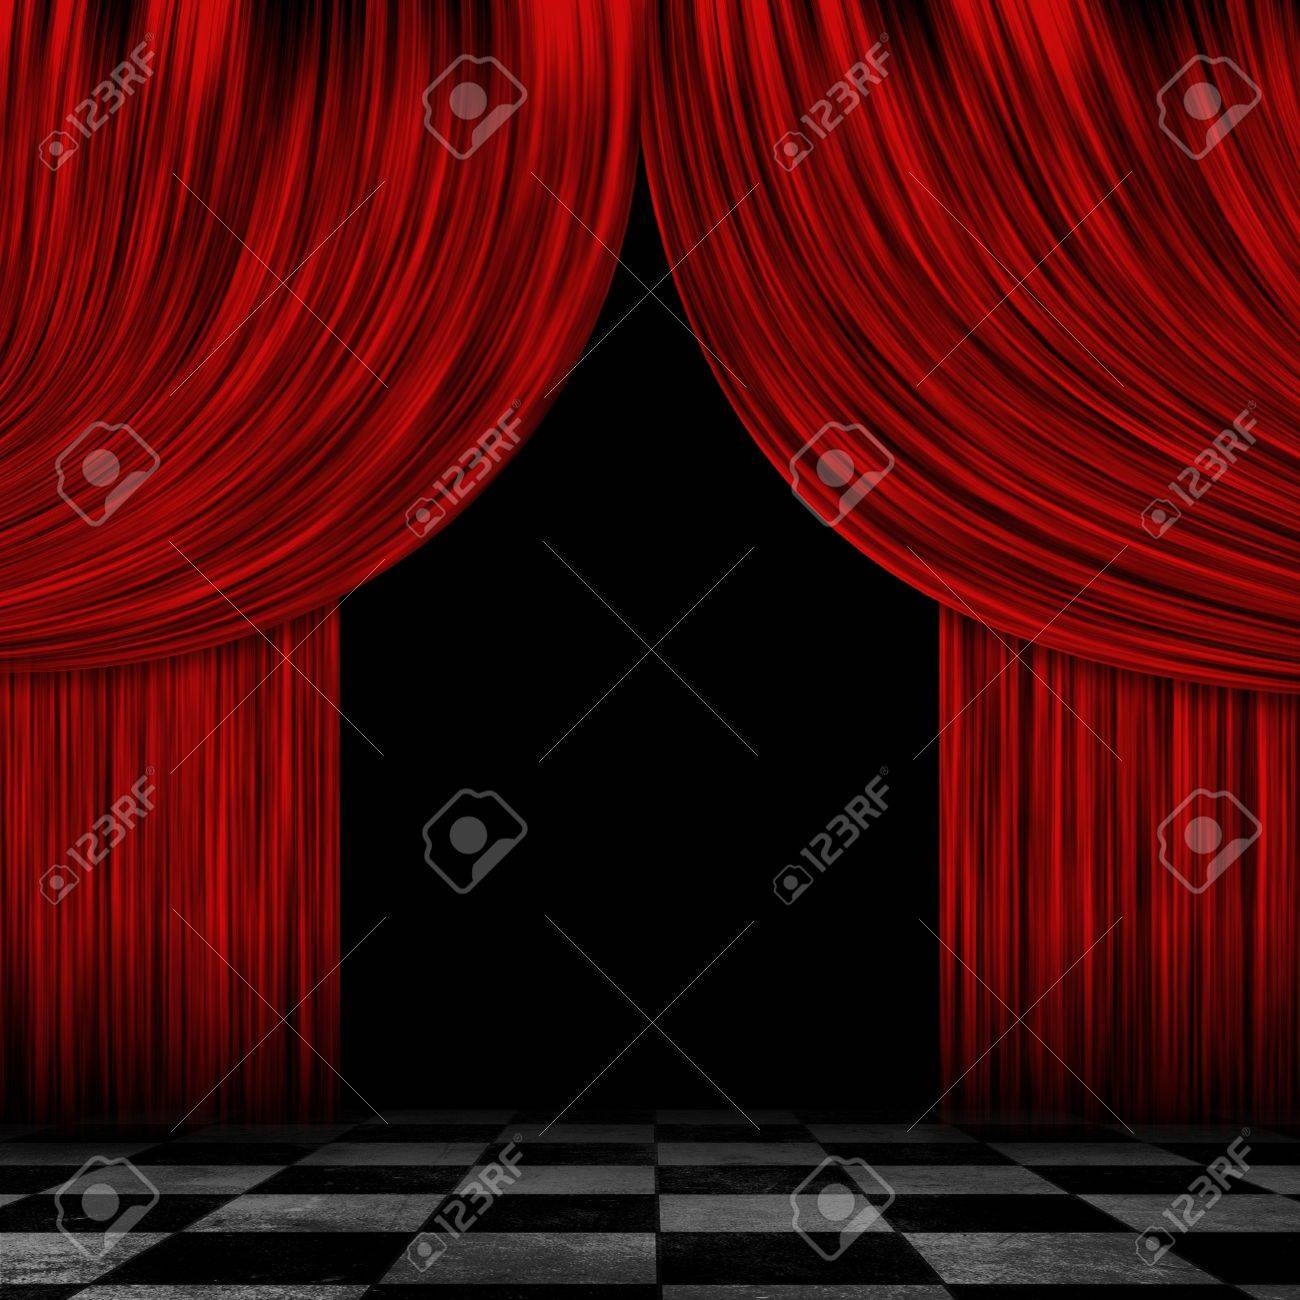 Open black curtain - Open Stage Curtains Illustration Illustration Of Open Theater Drapes Or Stage Curtains With A Black